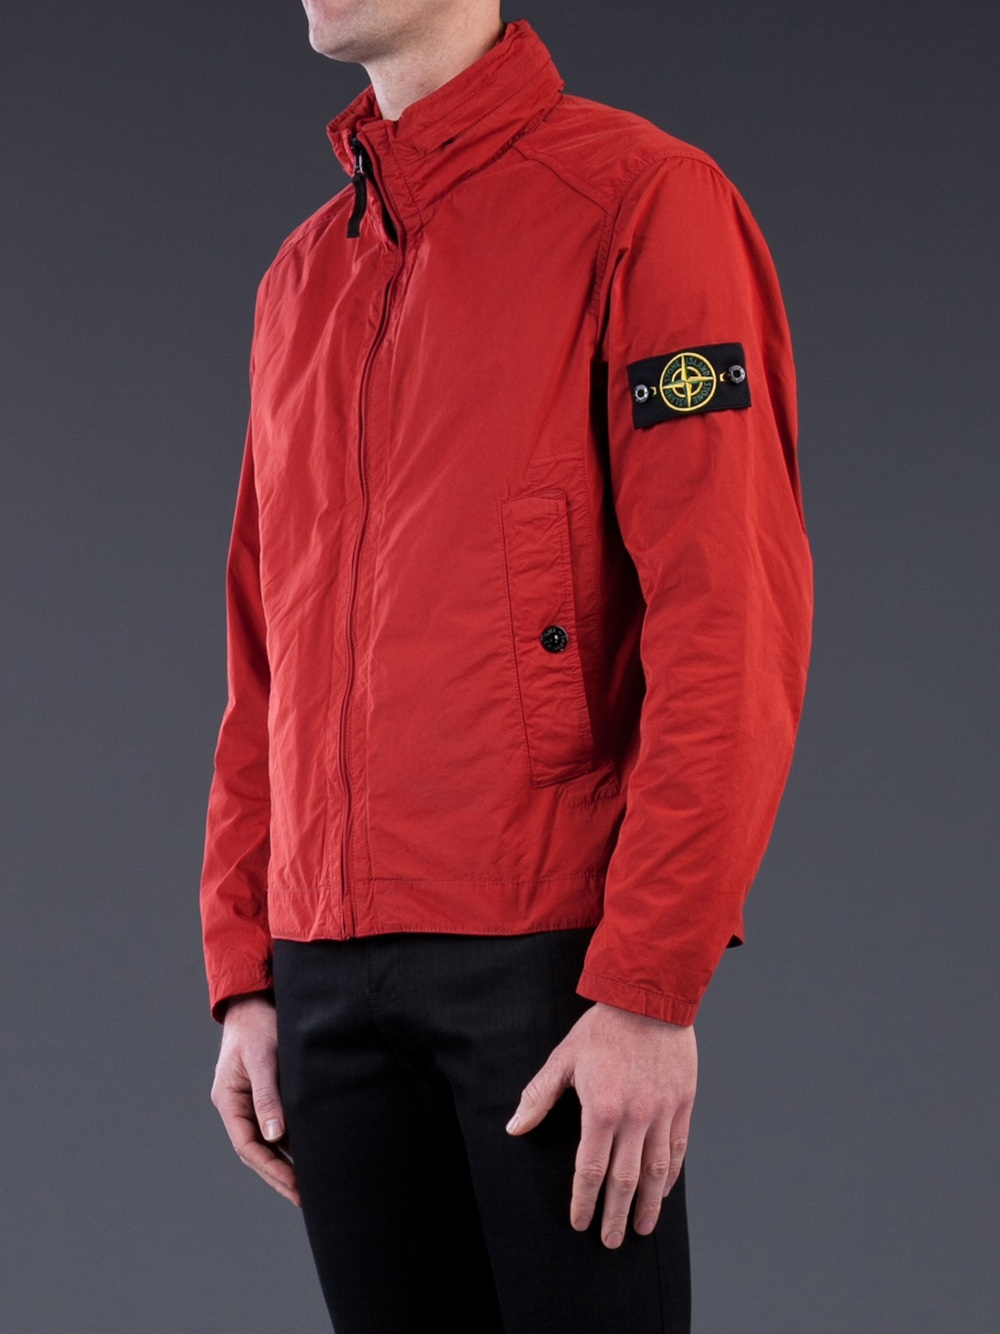 lyst stone island lightweight jacket in red for men. Black Bedroom Furniture Sets. Home Design Ideas